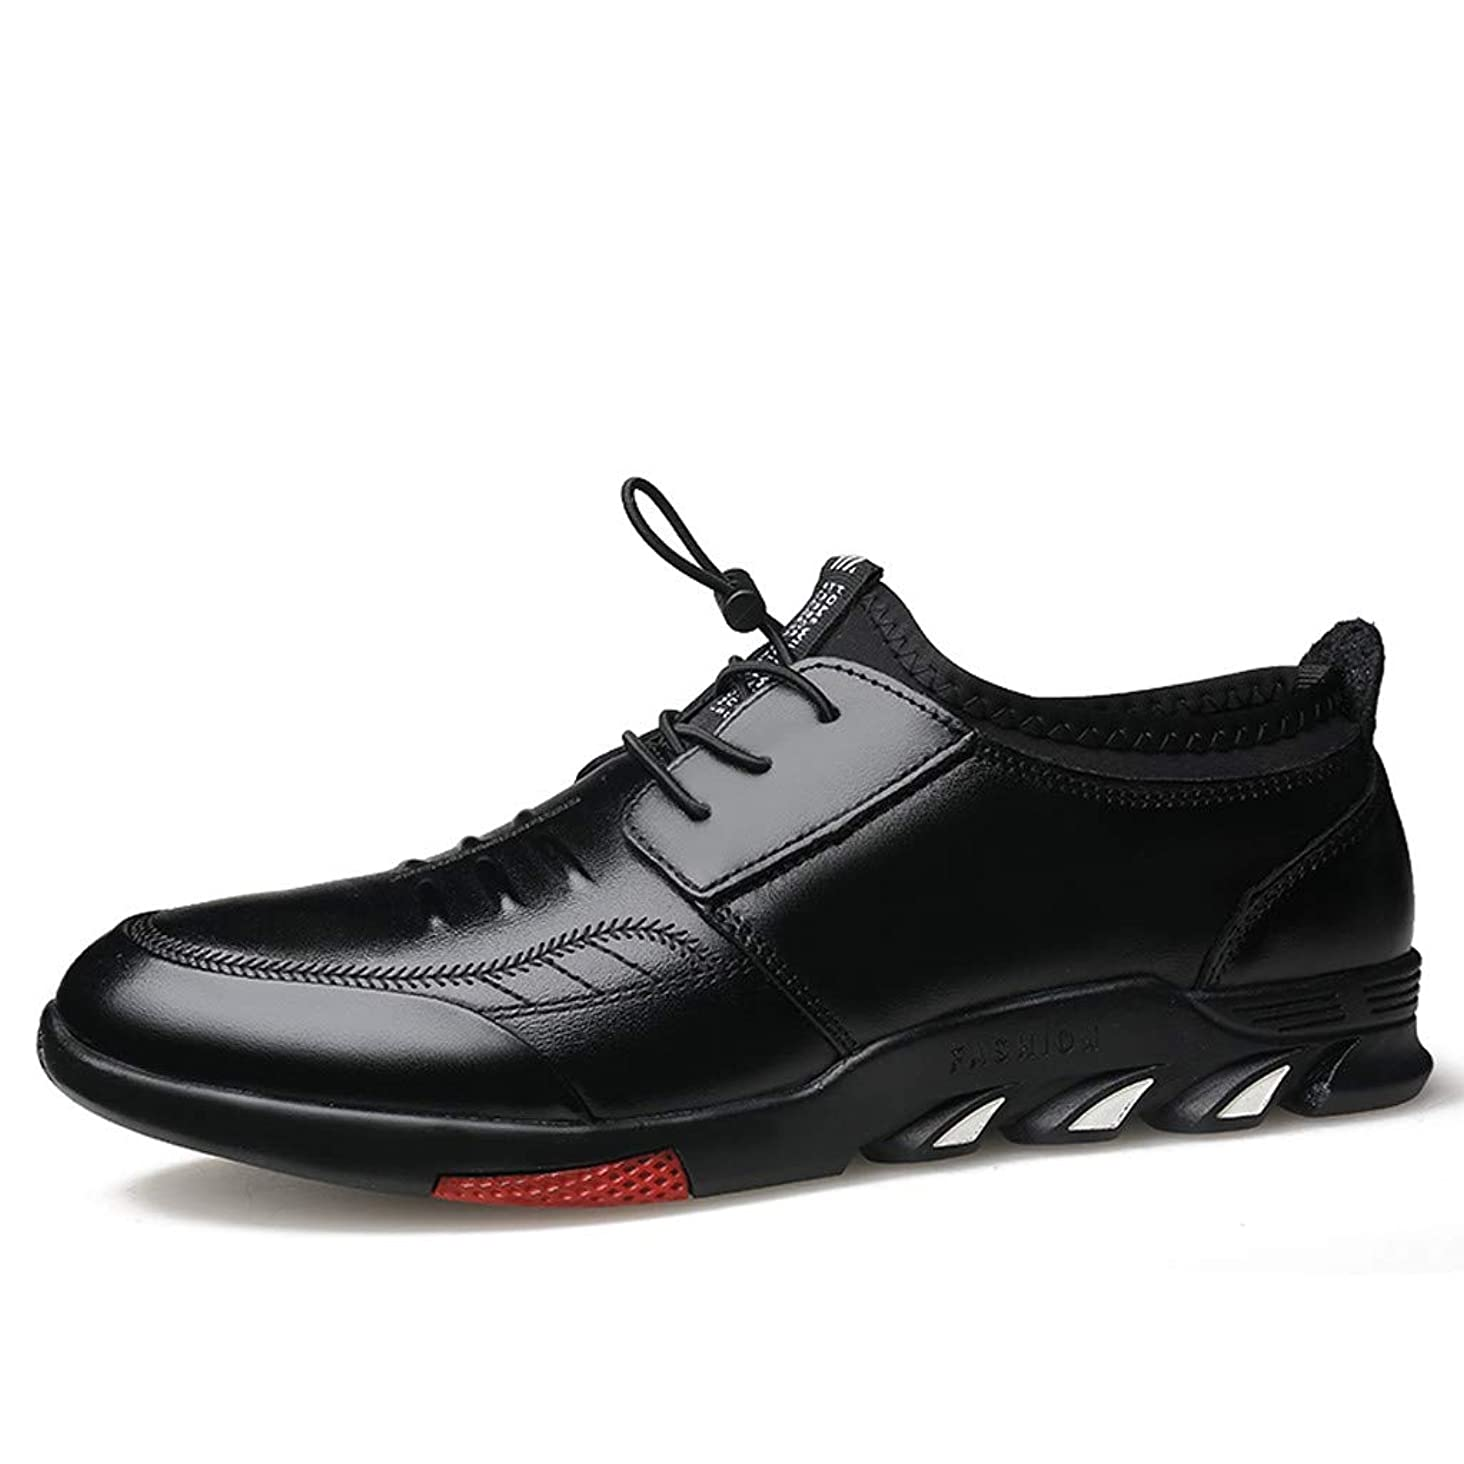 Respctful?Men's Fashion Oxford Genuine Leather Dress Shoes for Business Dress Casual Lace-Up